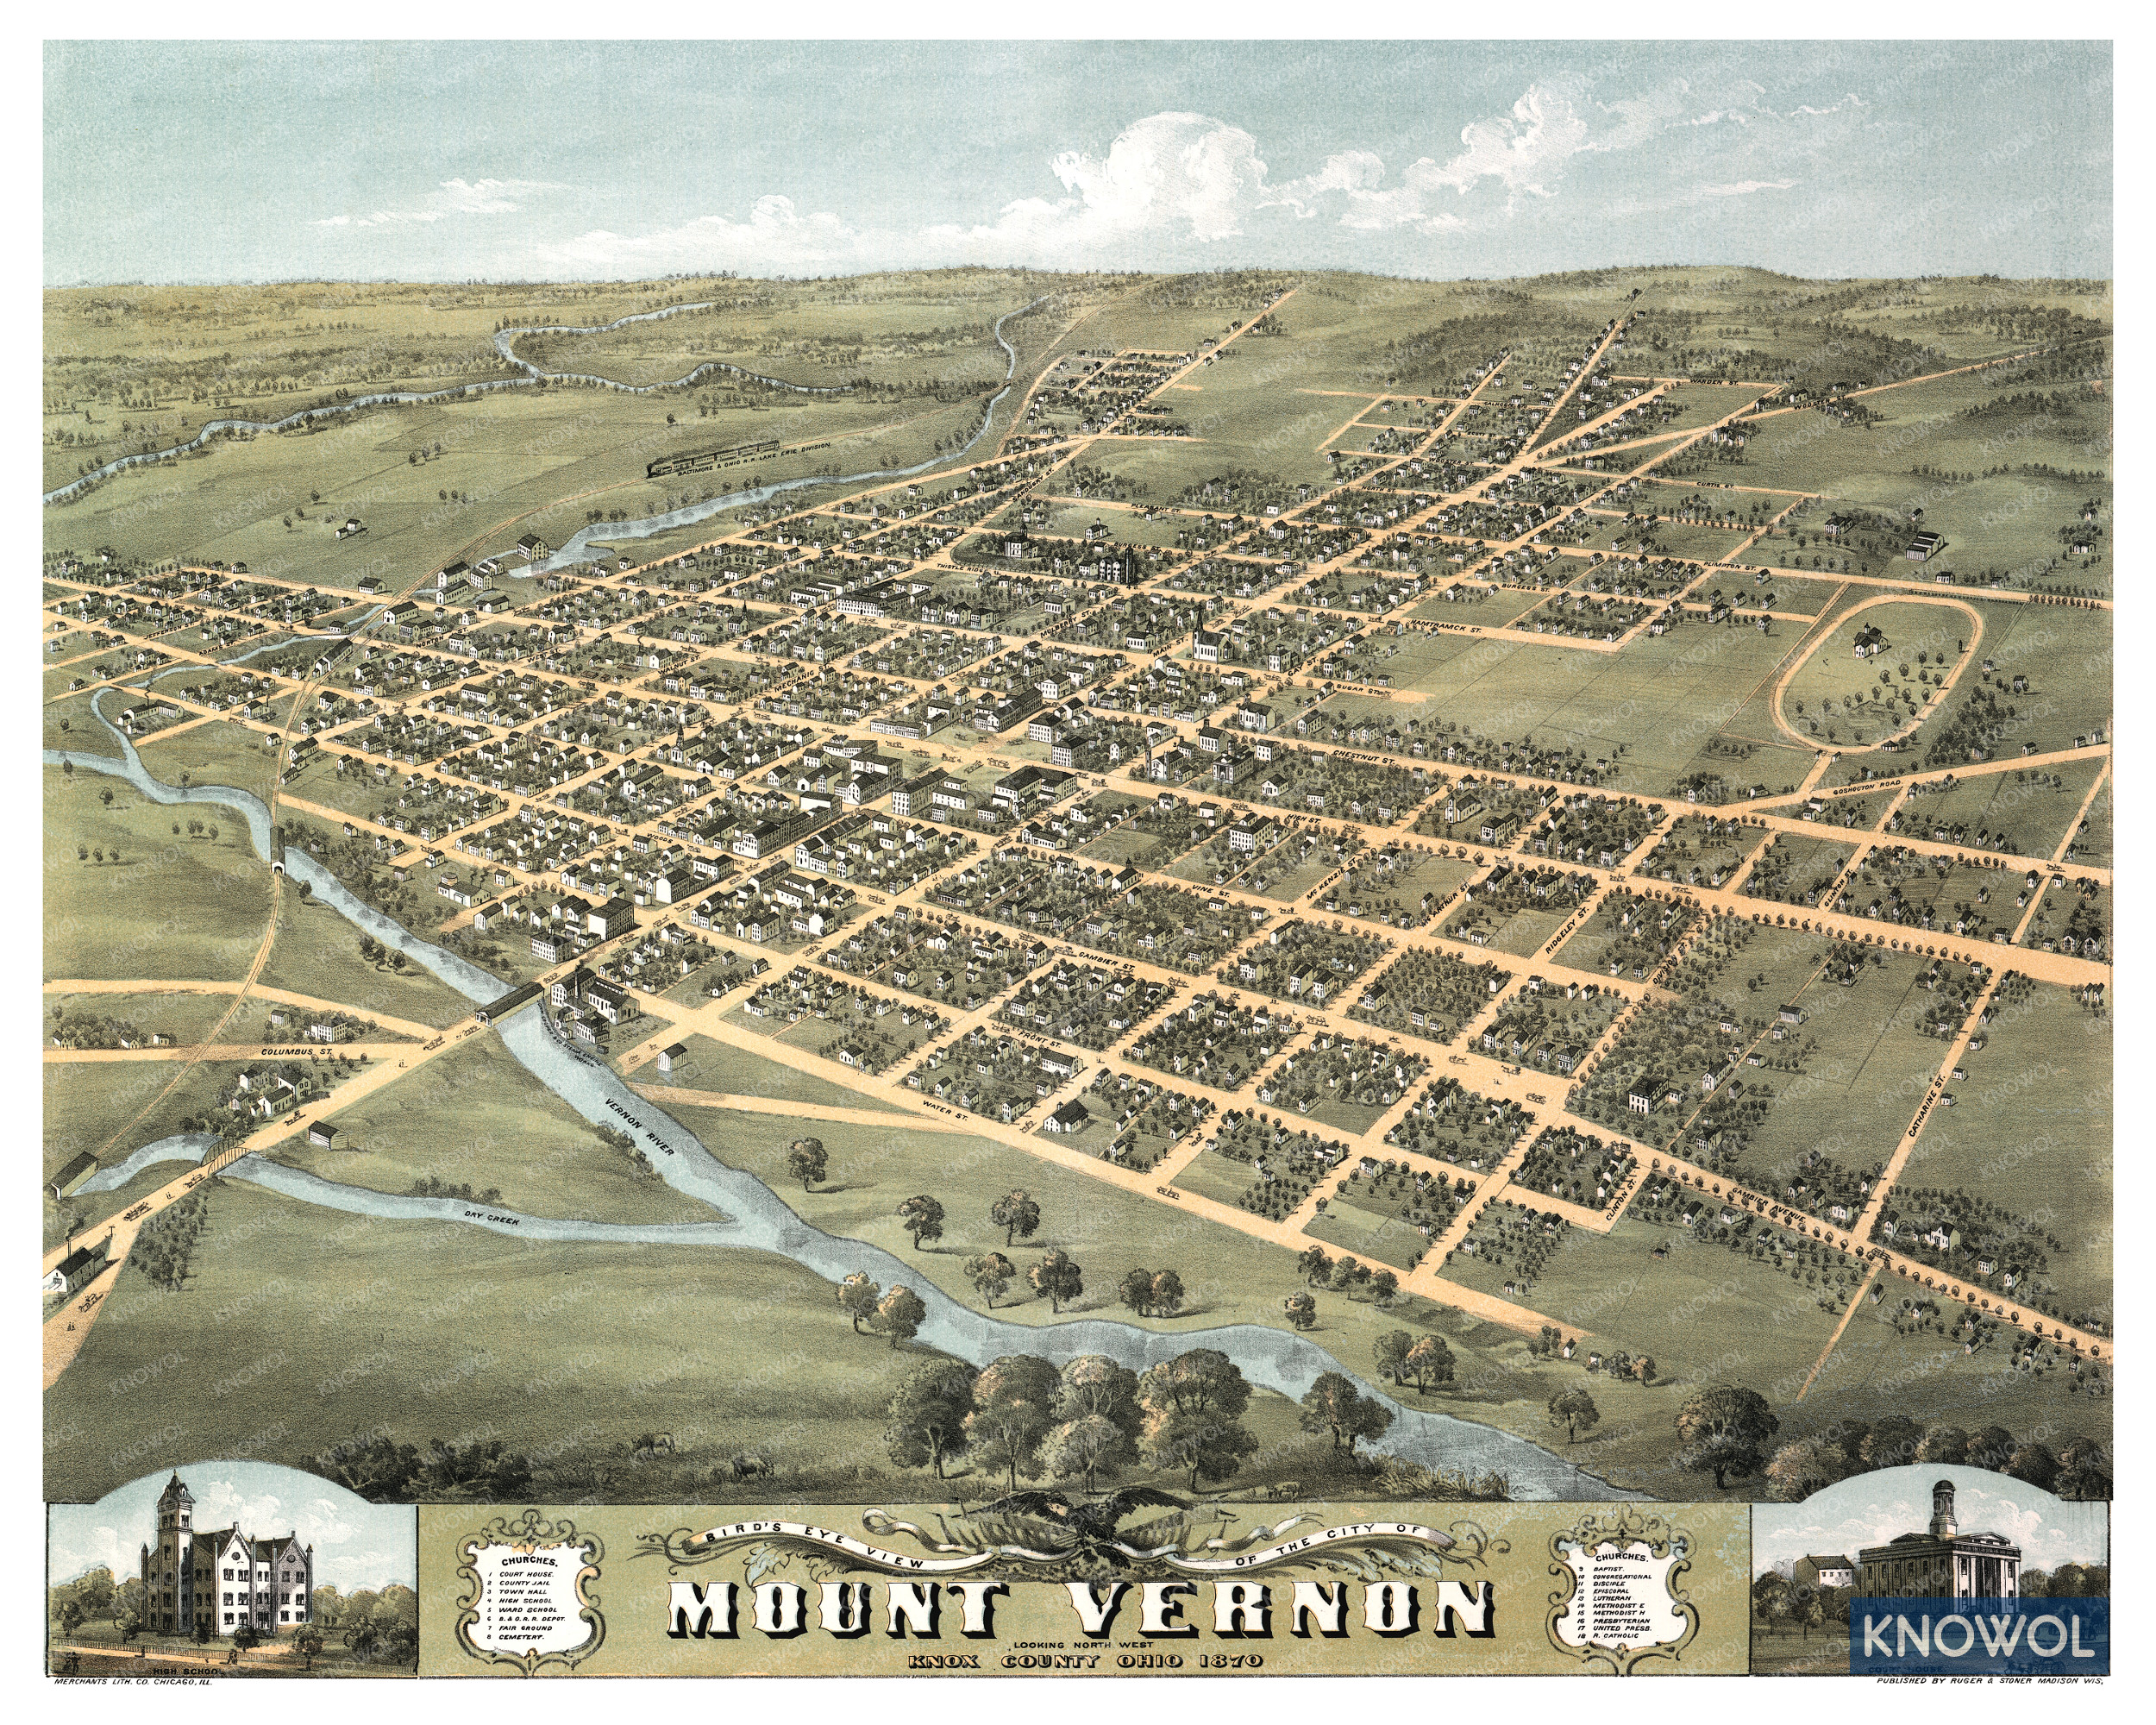 Restored old map of Mount Vernon, Ohio from 1870. The map shows a bird's eye view of the city as it used to look, including street names and old landmarks.